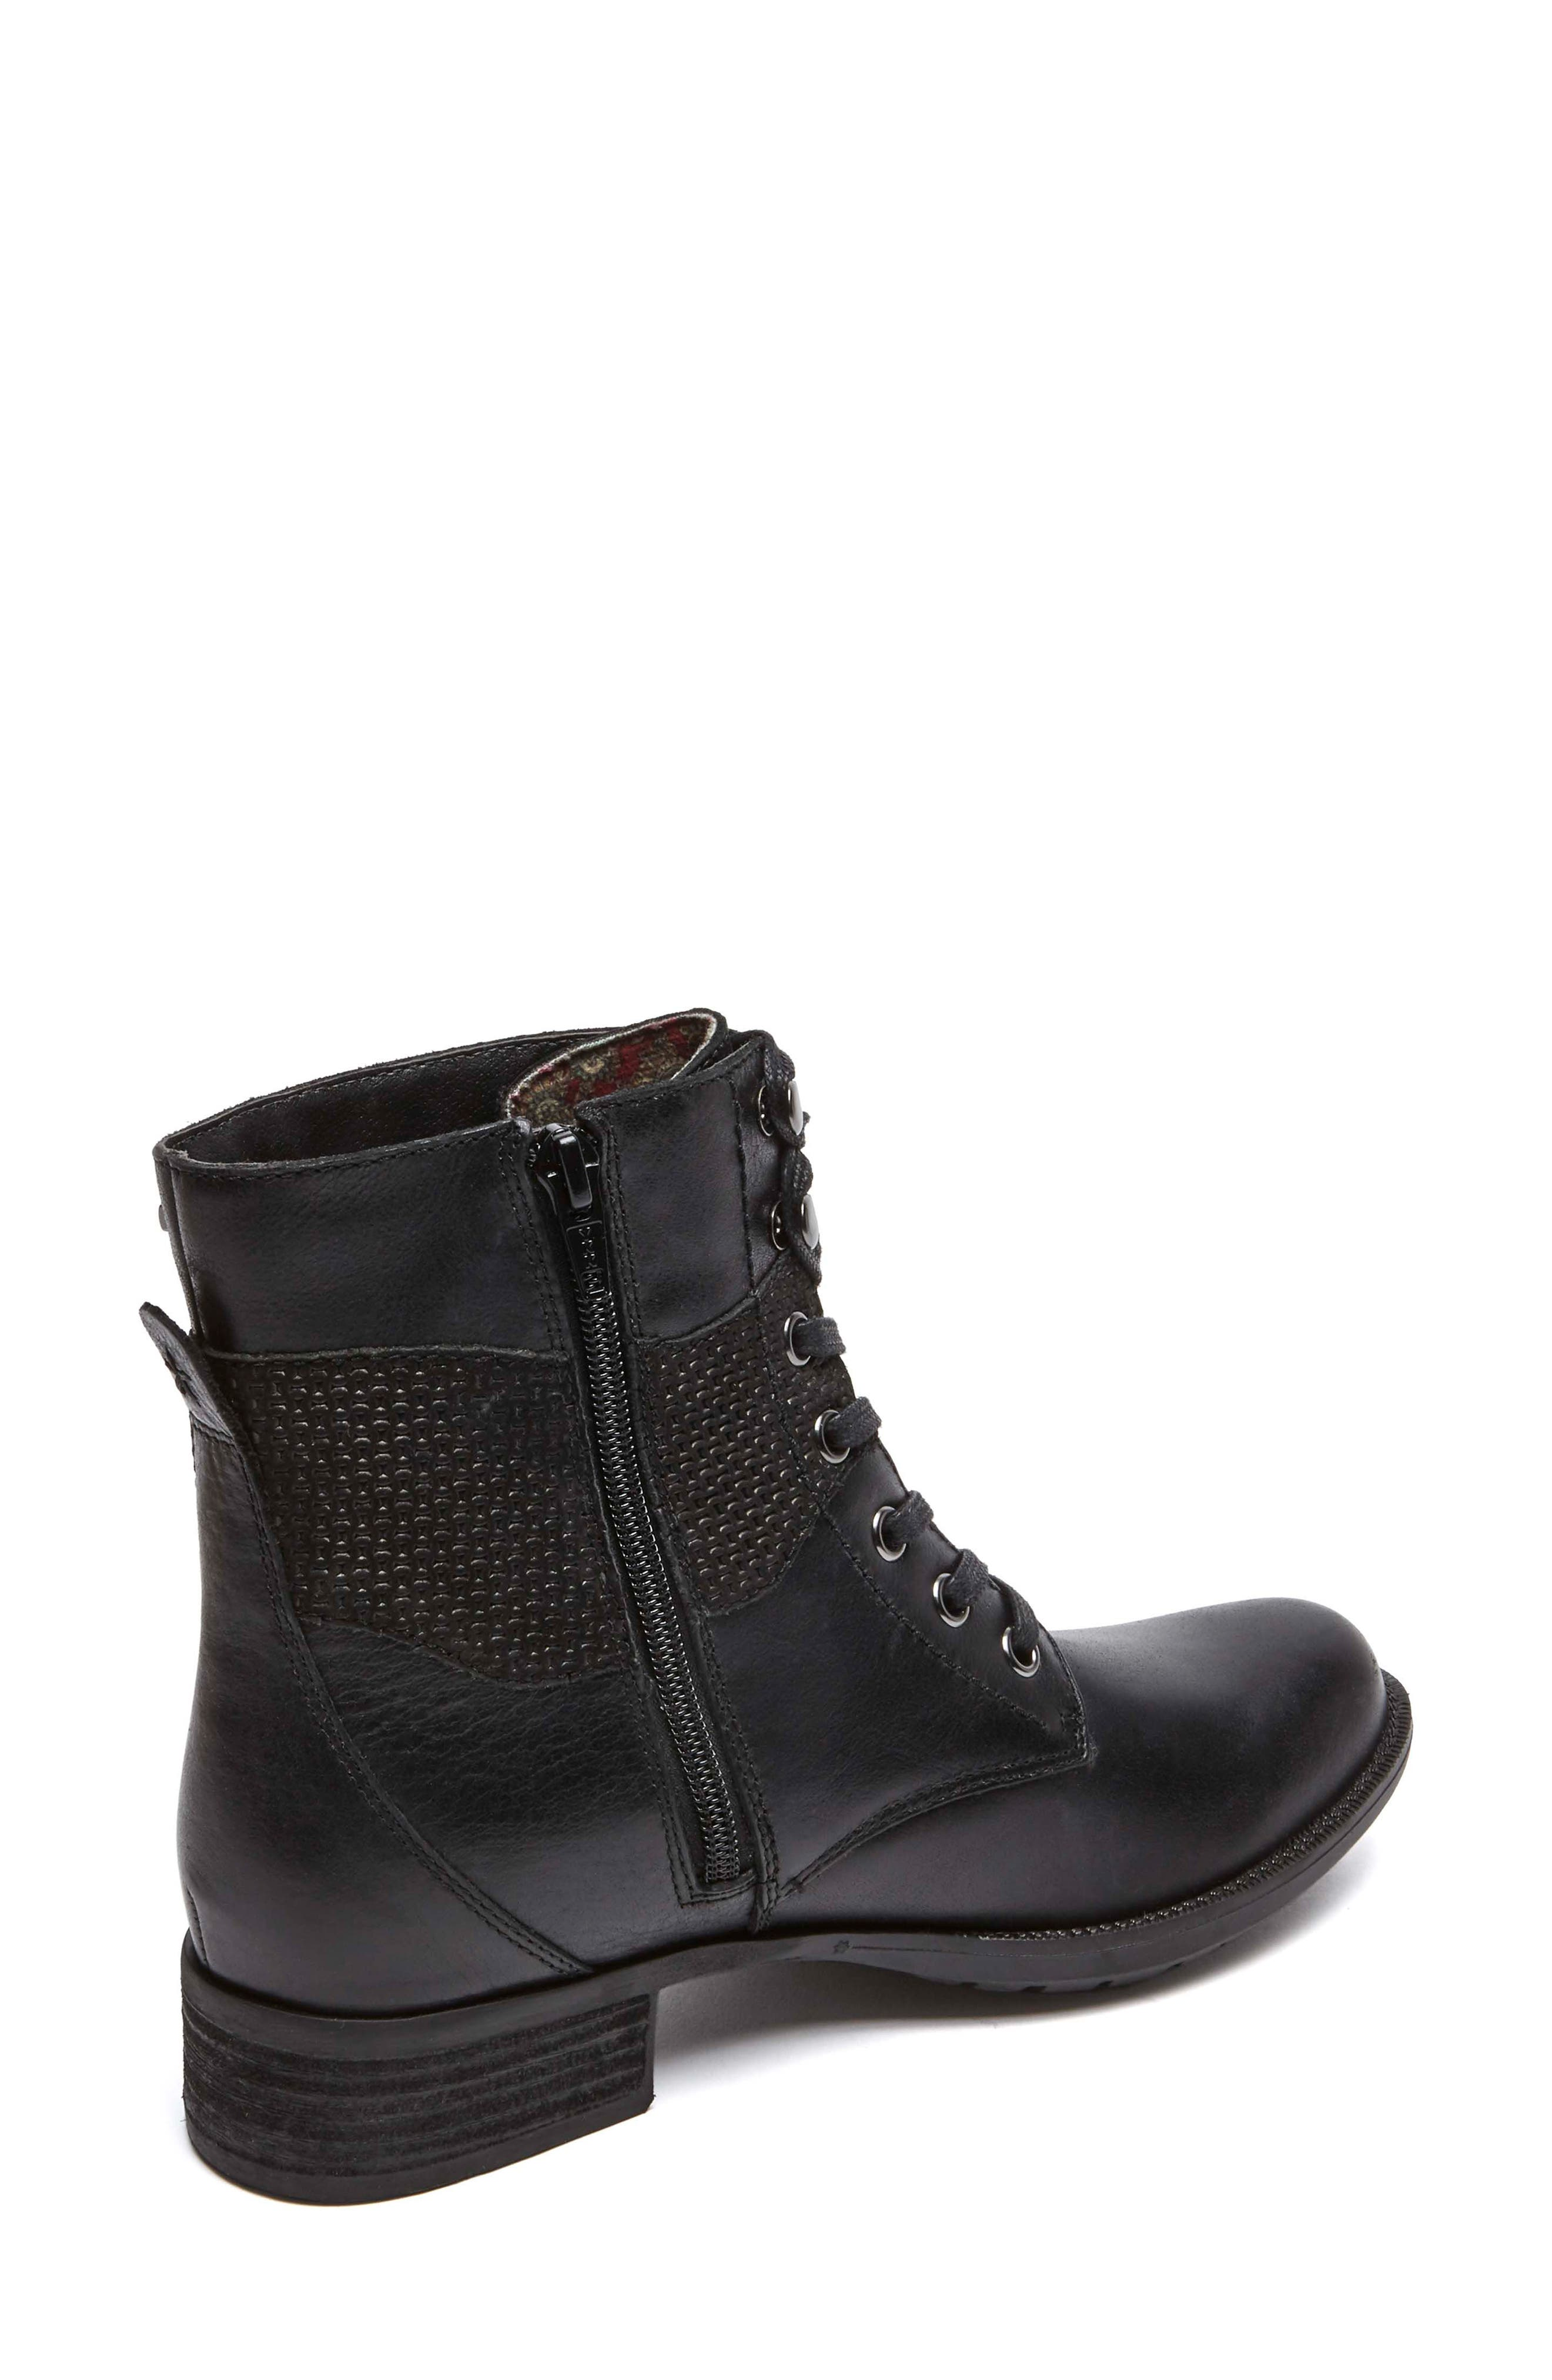 Copley Waterproof Combat Boot,                             Alternate thumbnail 2, color,                             Black Leather